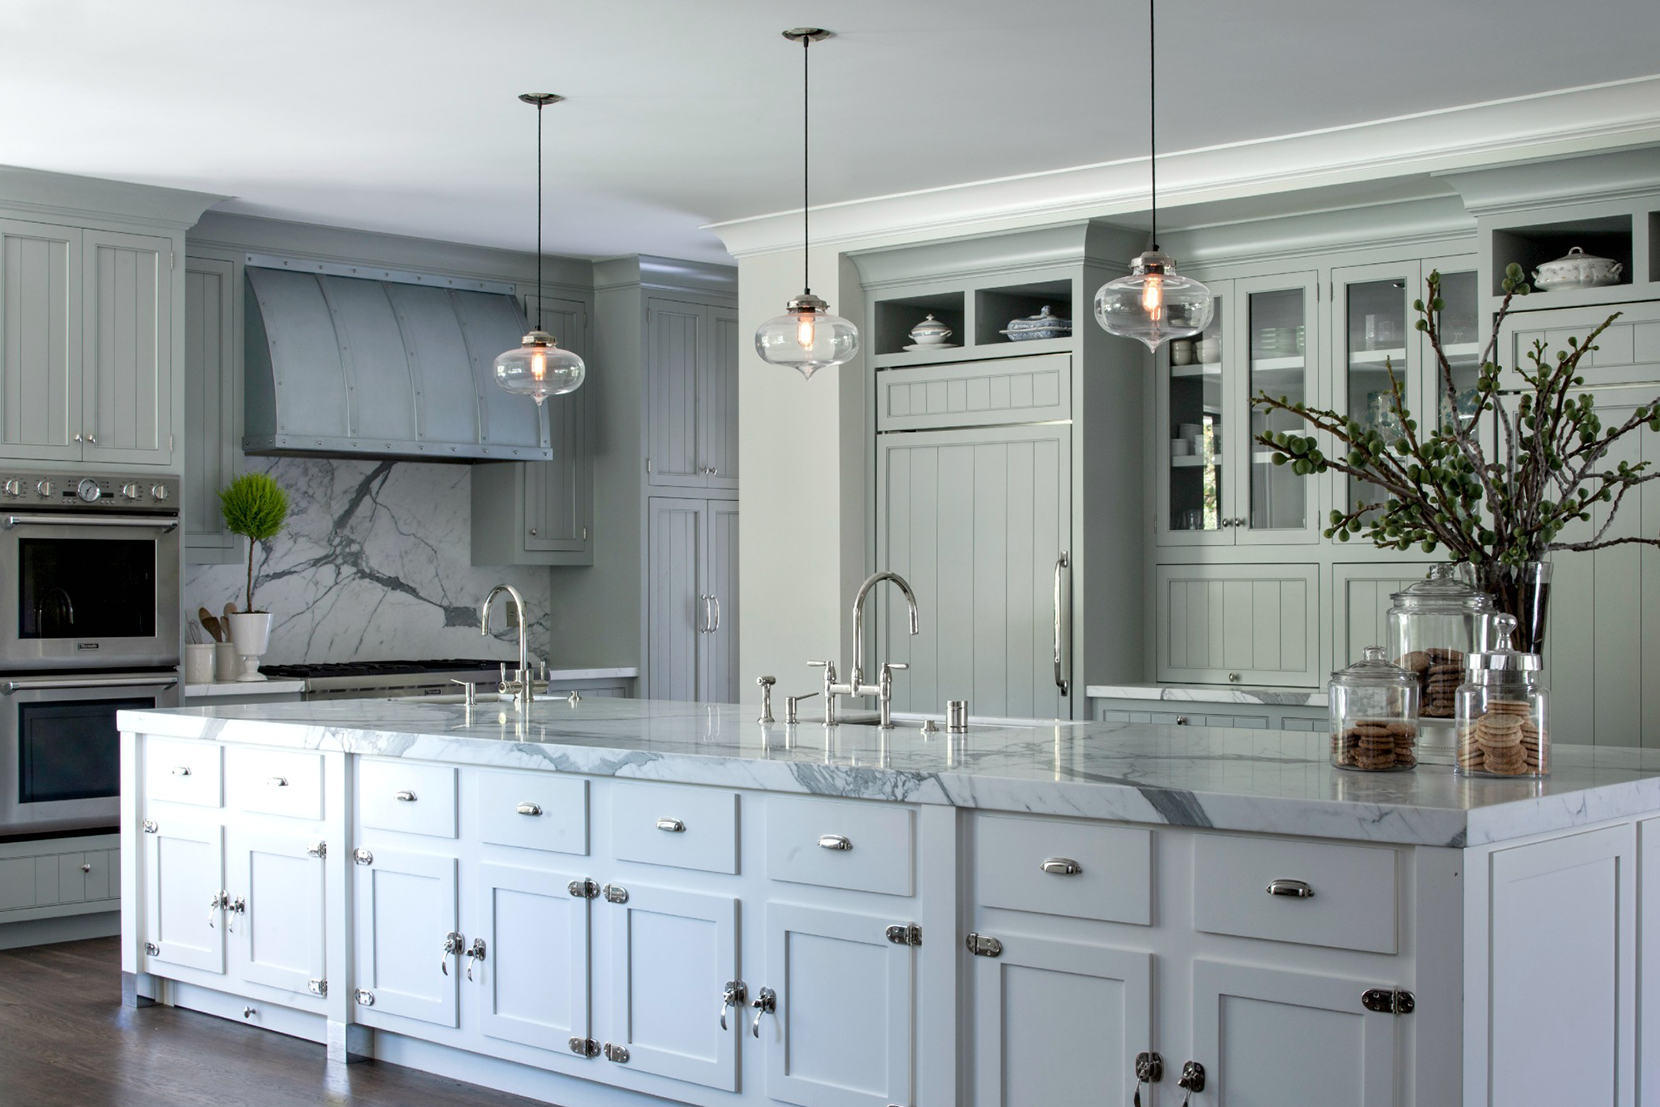 Lighting-Project-Pages_0007s_0004_Kitchen-Island-Contemporary-Lighting.png